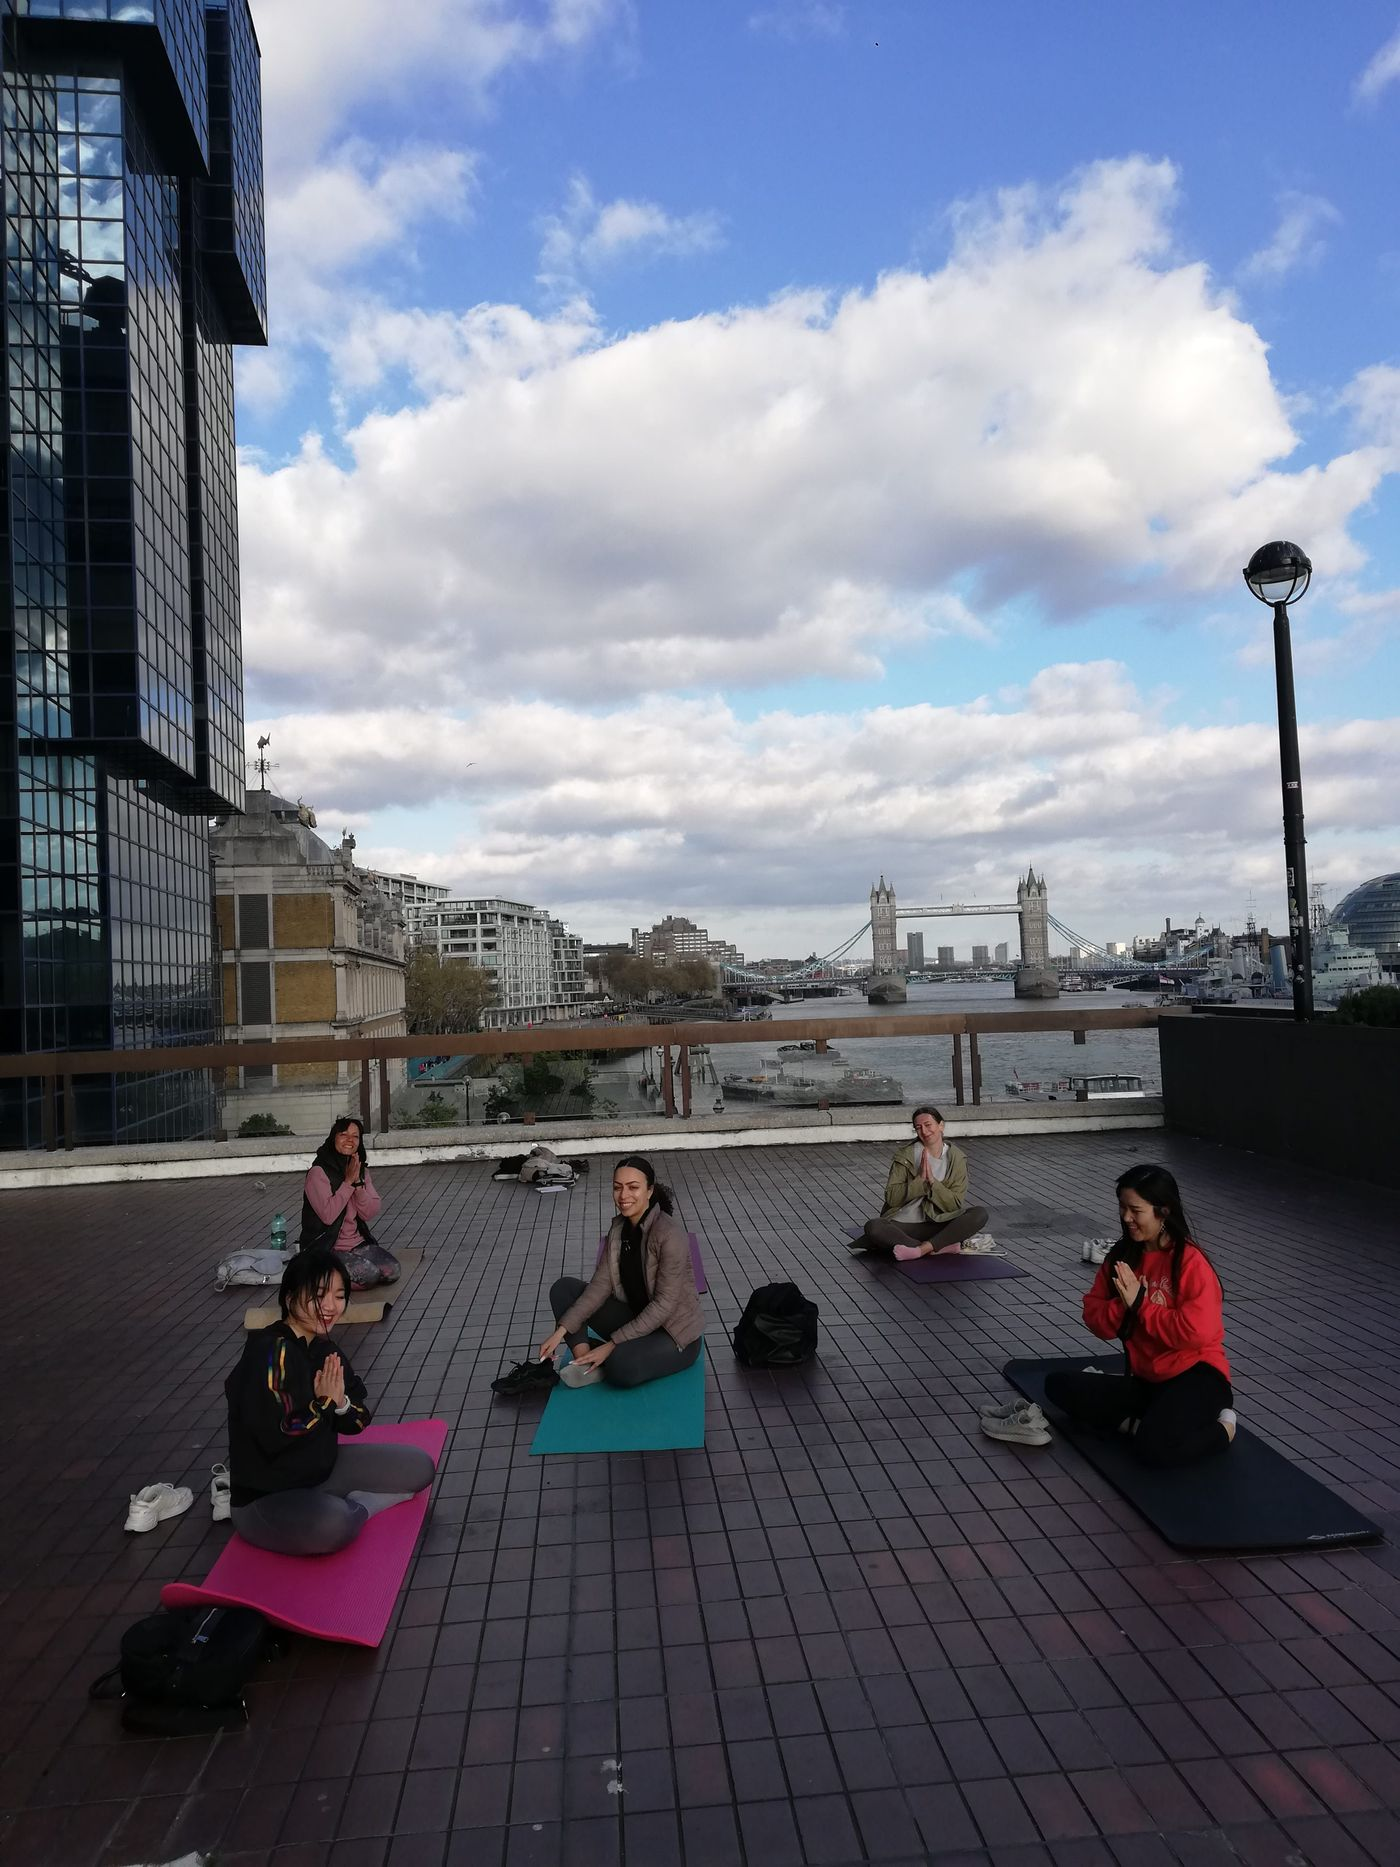 Regenerating energy though yoga and meditation in one of the nicest spots for Tower Bridge views is not a dream anymore it is a Sunday class 🙏🌸thank you for thouse who shared practise with me 💖Have a lovely Sunday!